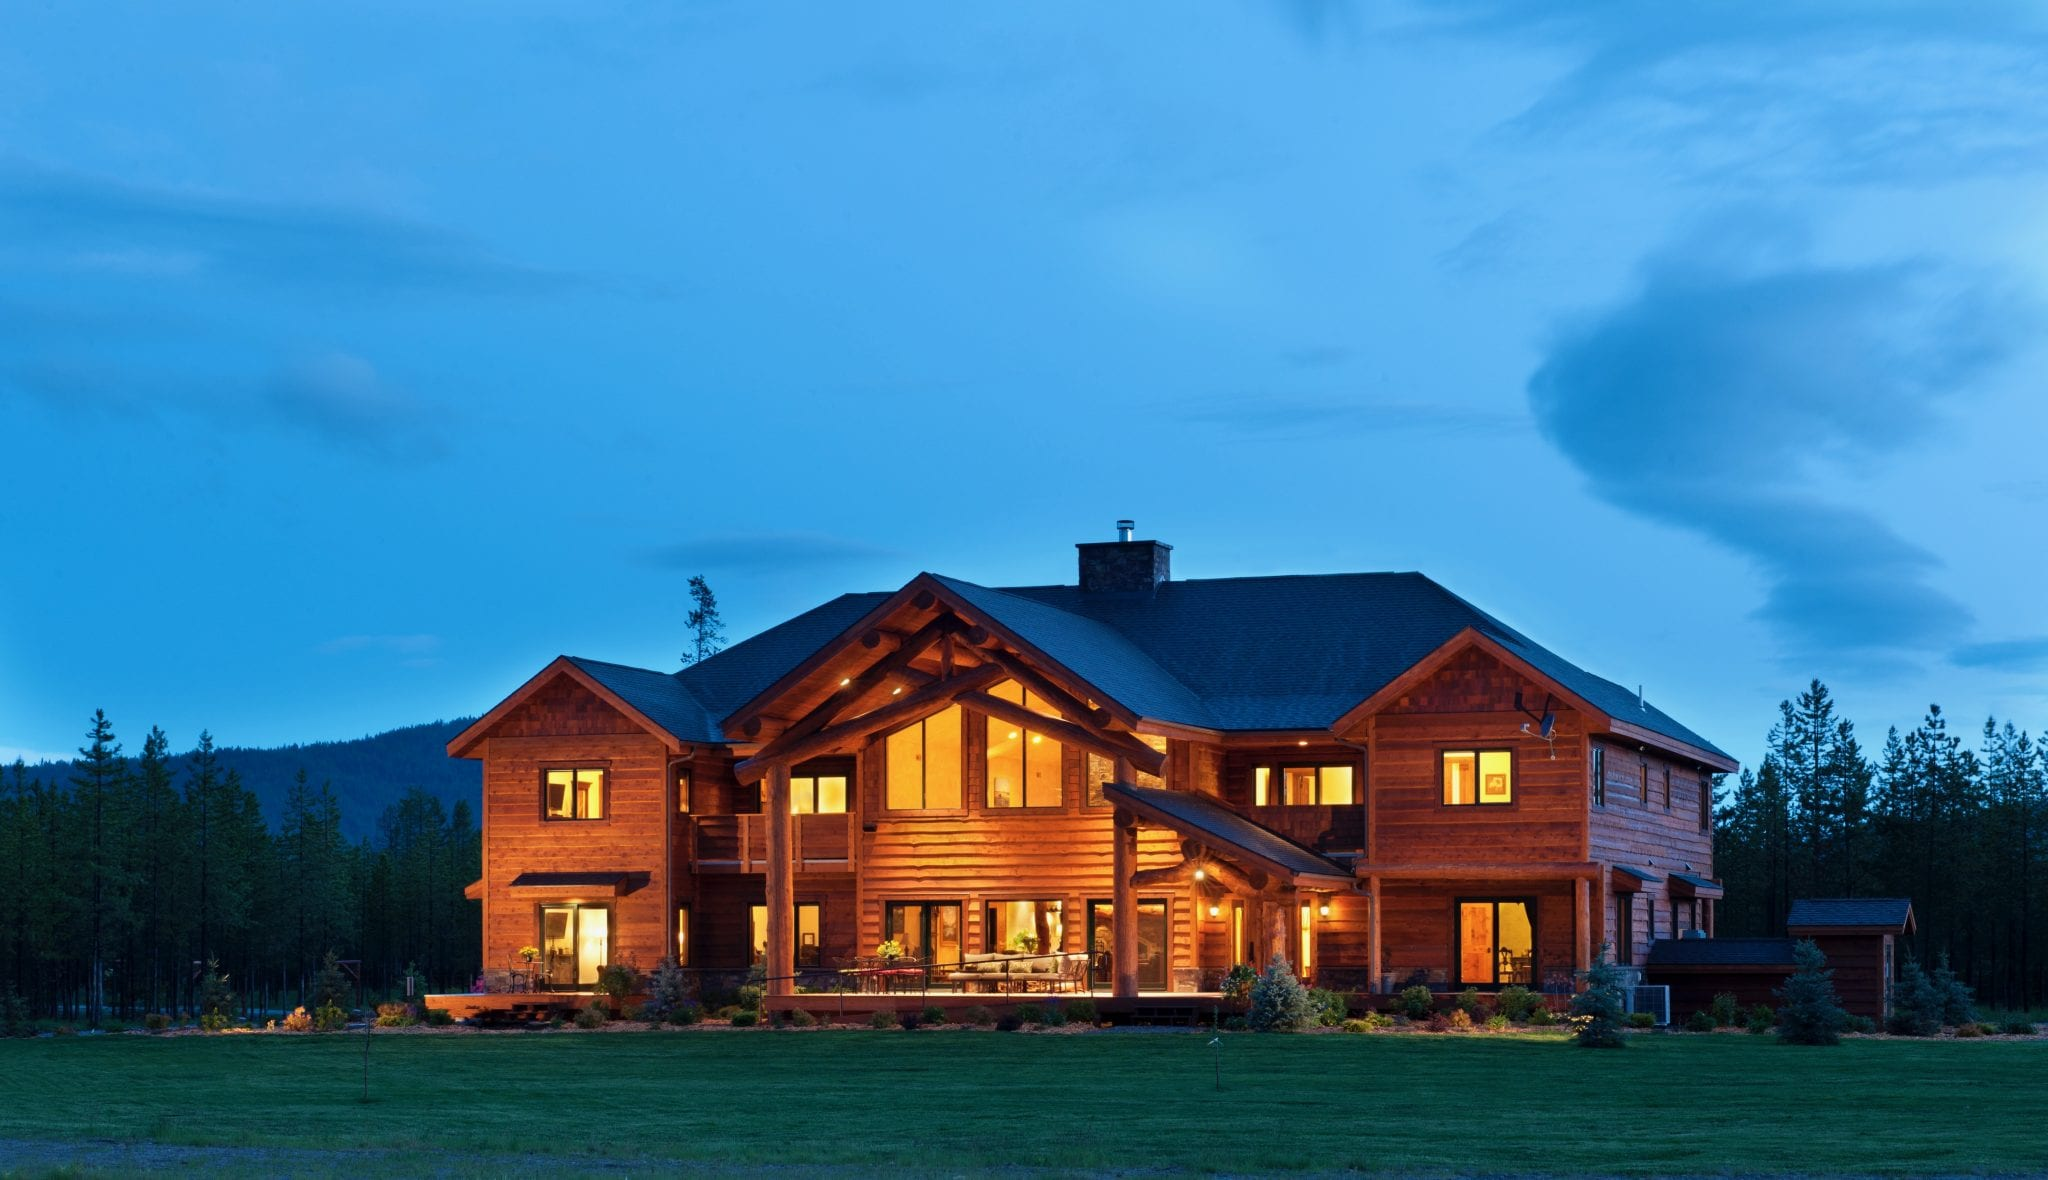 Cabin Creek Landing Bed and Breakfast all wooden lodge in the evening wedding venue